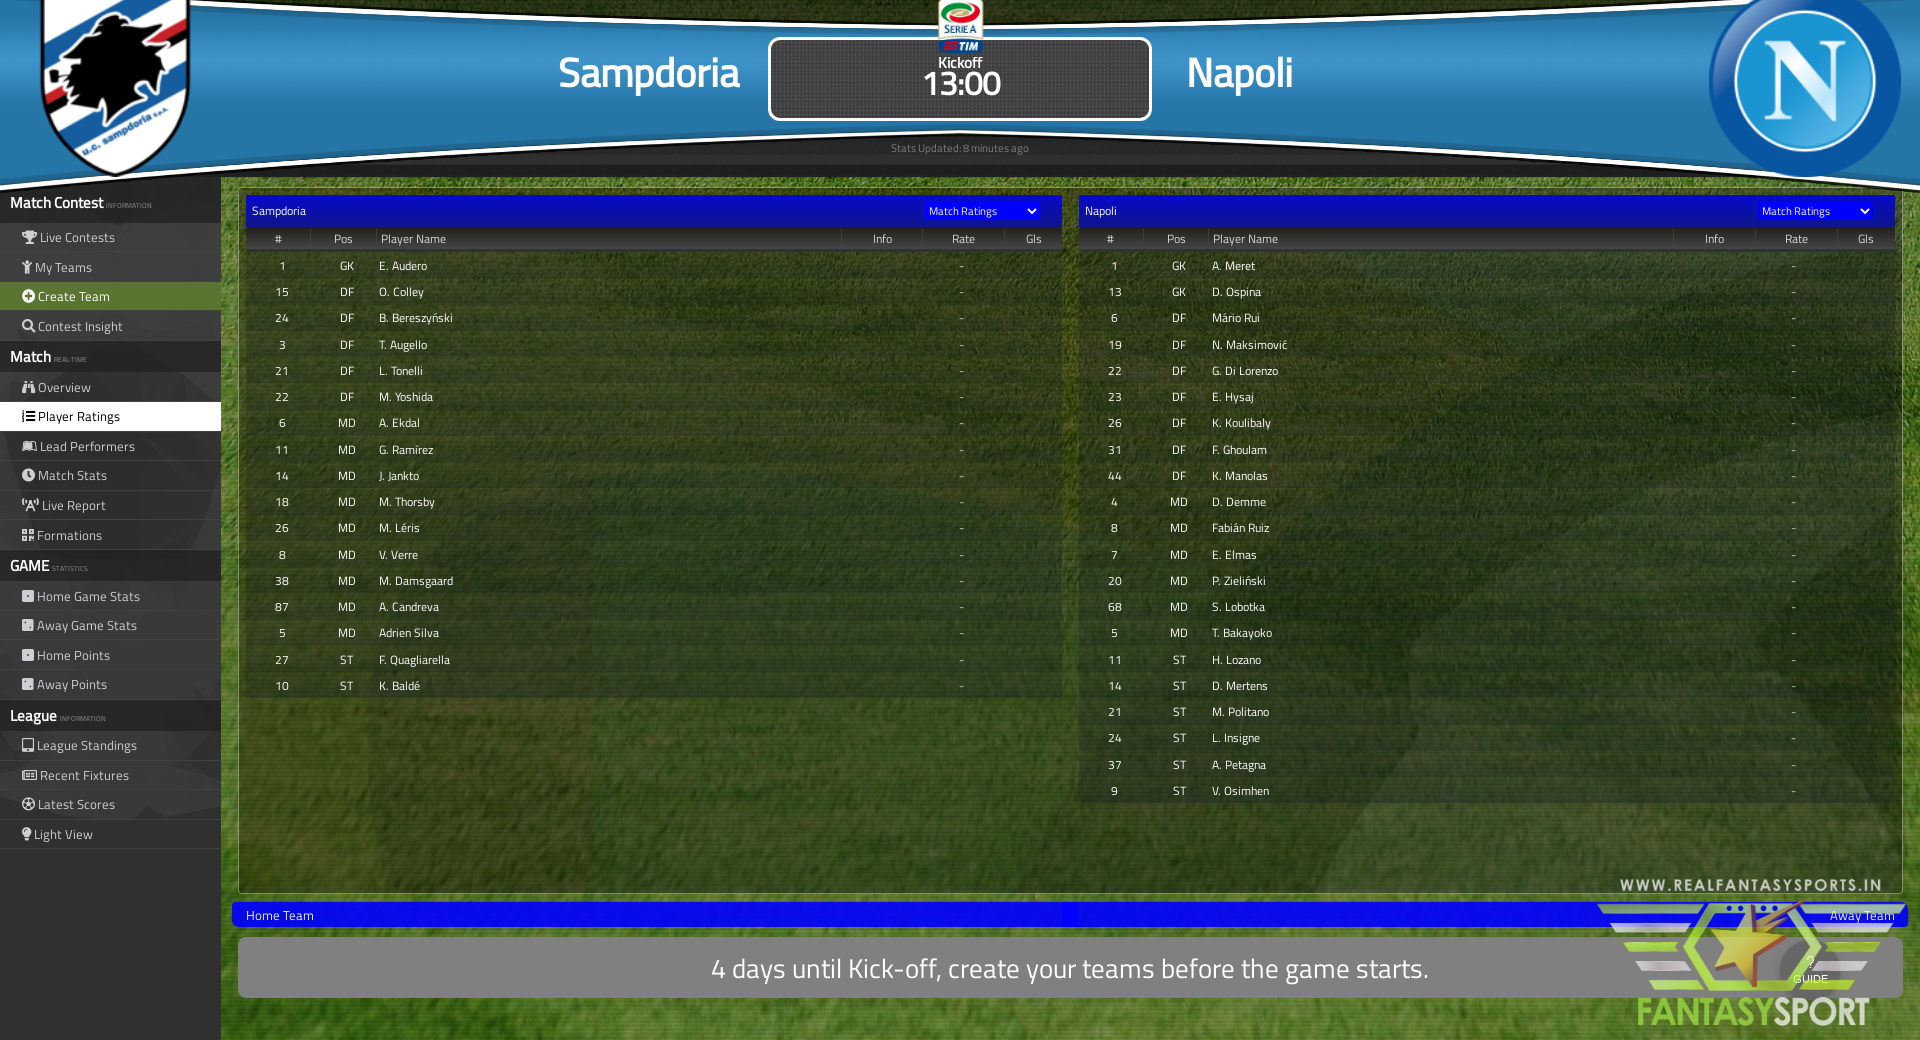 Fantasy Football Sampdoria Vs Napoli